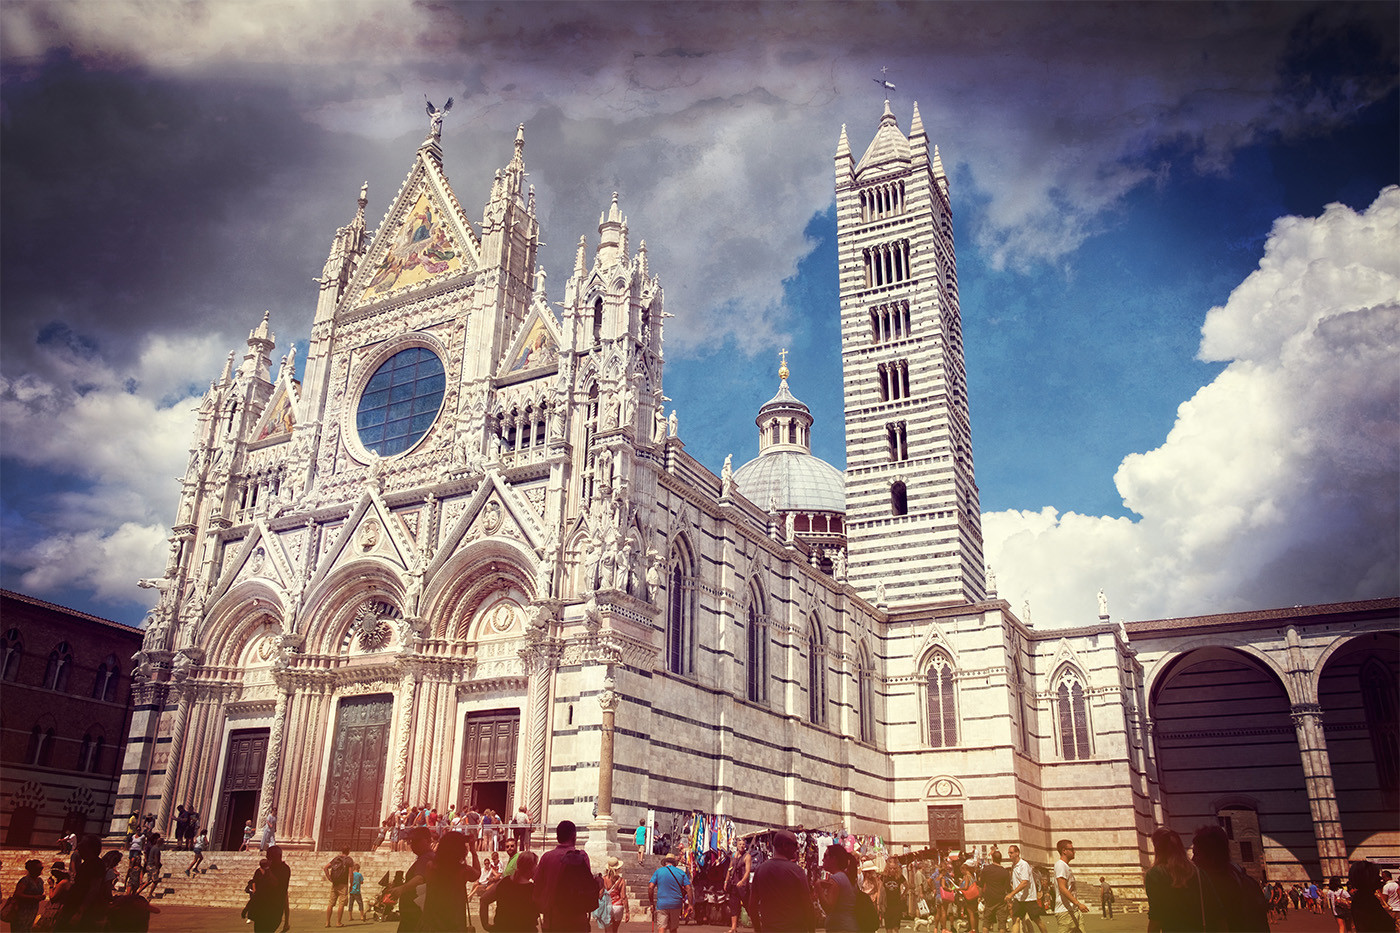 16 SIENA CATHEDRAL by Colin Smith